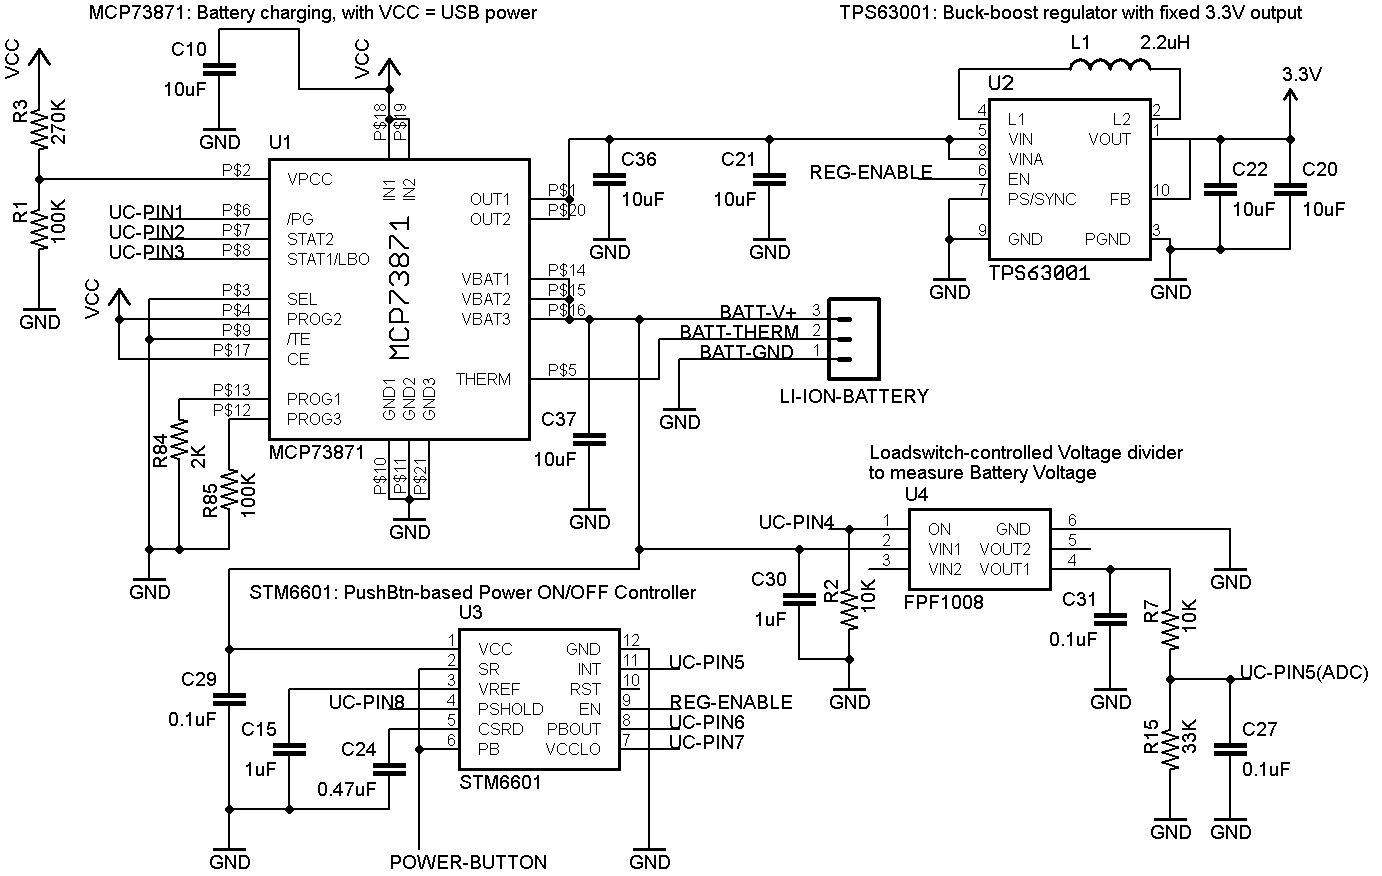 usb hub schematic design